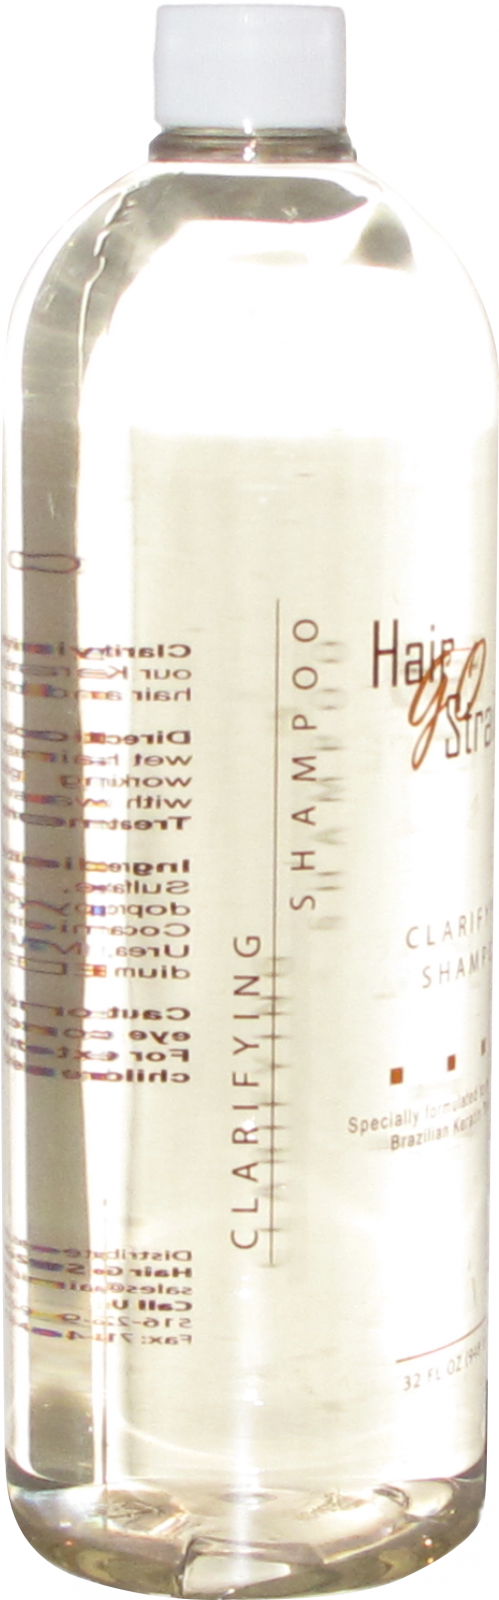 SHAMPOING%20CLARIFIANT%20HAIR%20GO%20STRAIGHT%201000%20ml